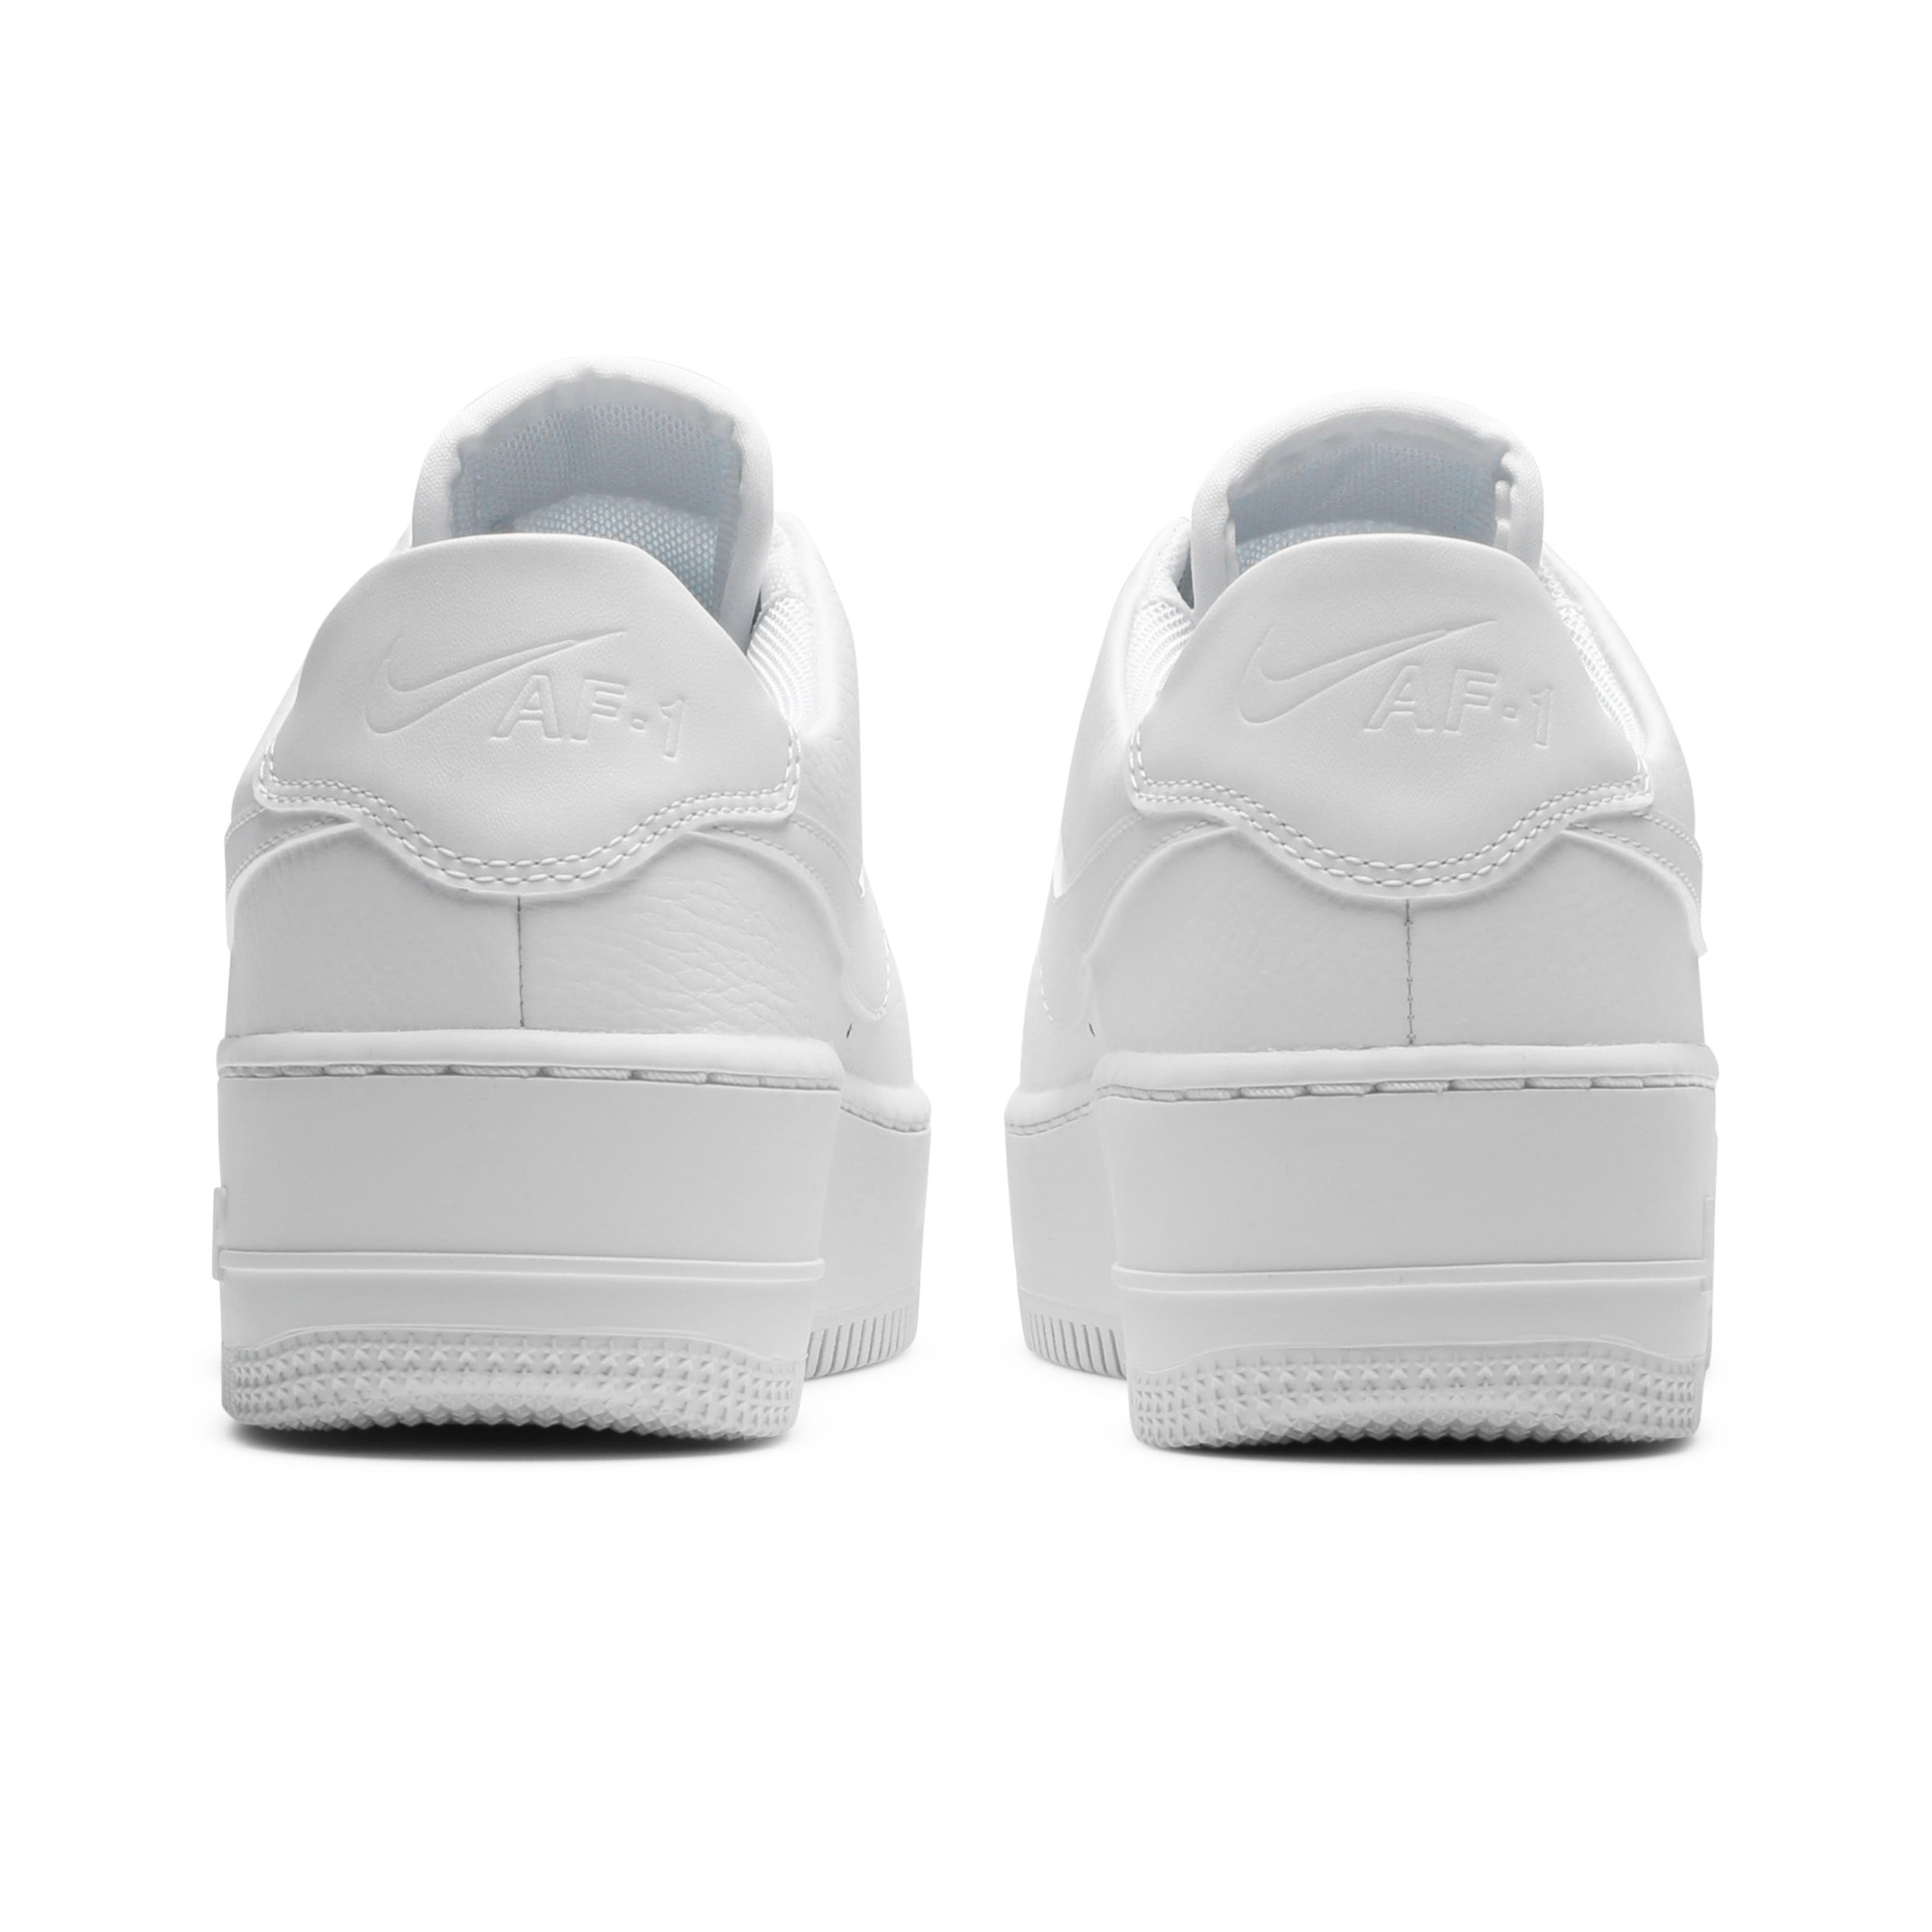 Nike Shoes WOMEN'S AIR FORCE 1 SAGE LOW